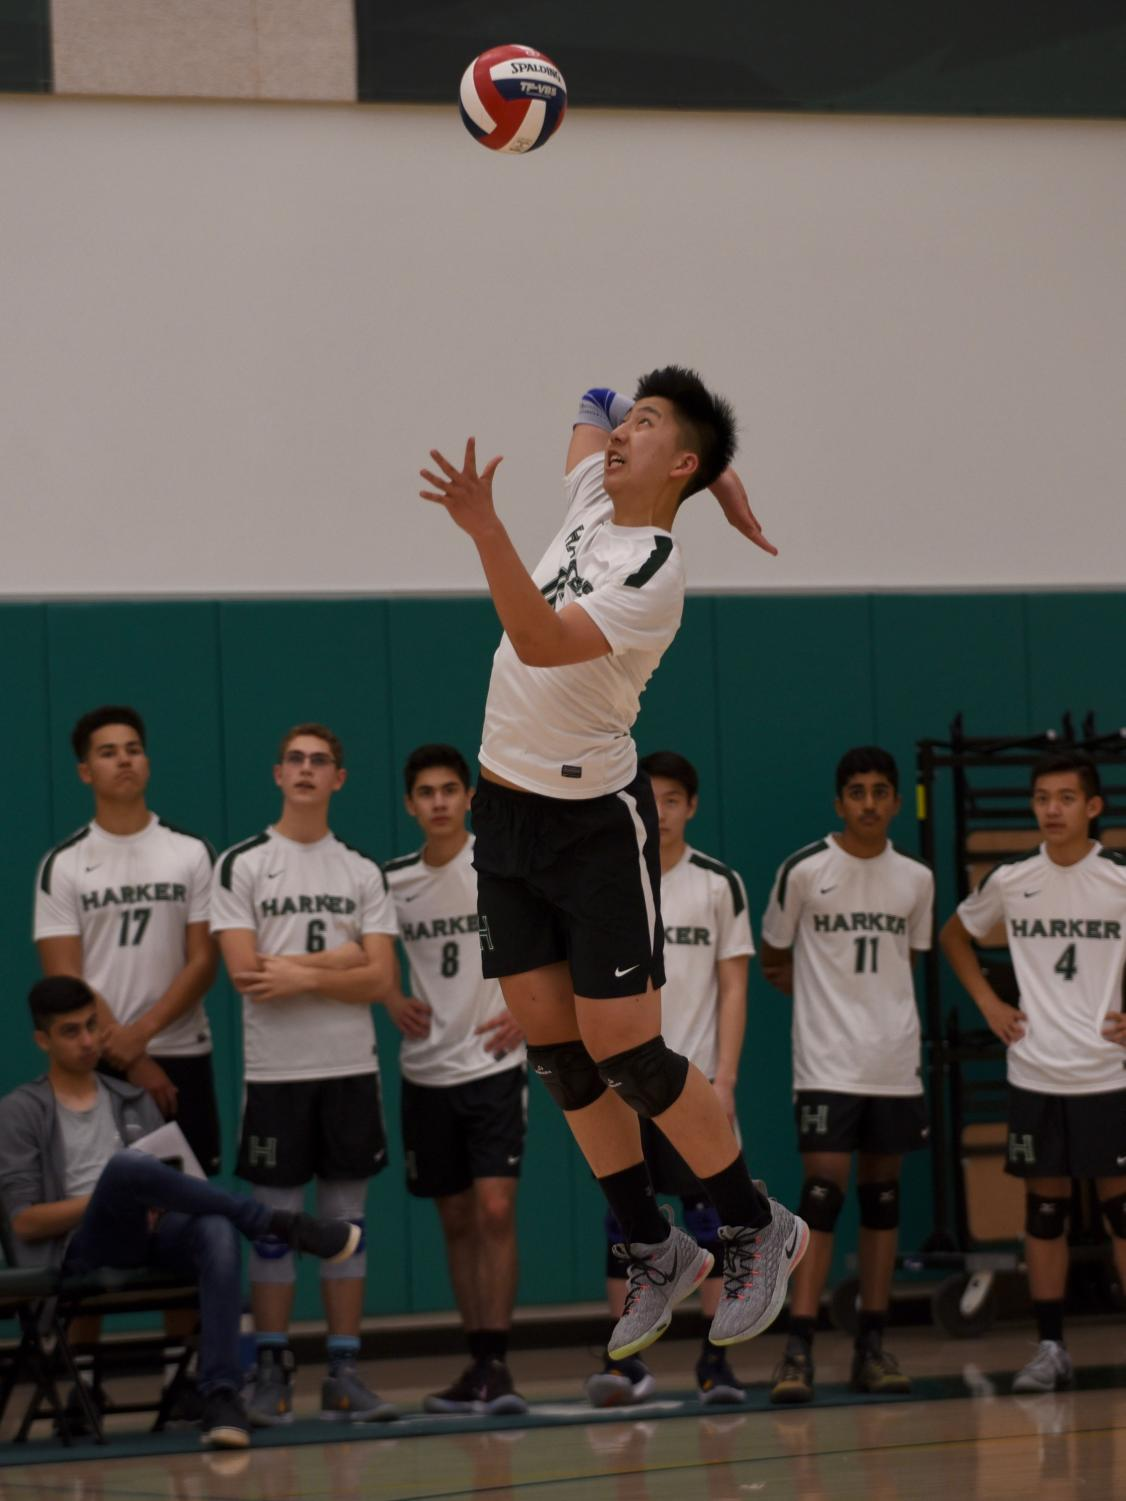 Billy Fan (10) jumps up and serves against Homestead. The team has an 18-0 record set-wise this season.